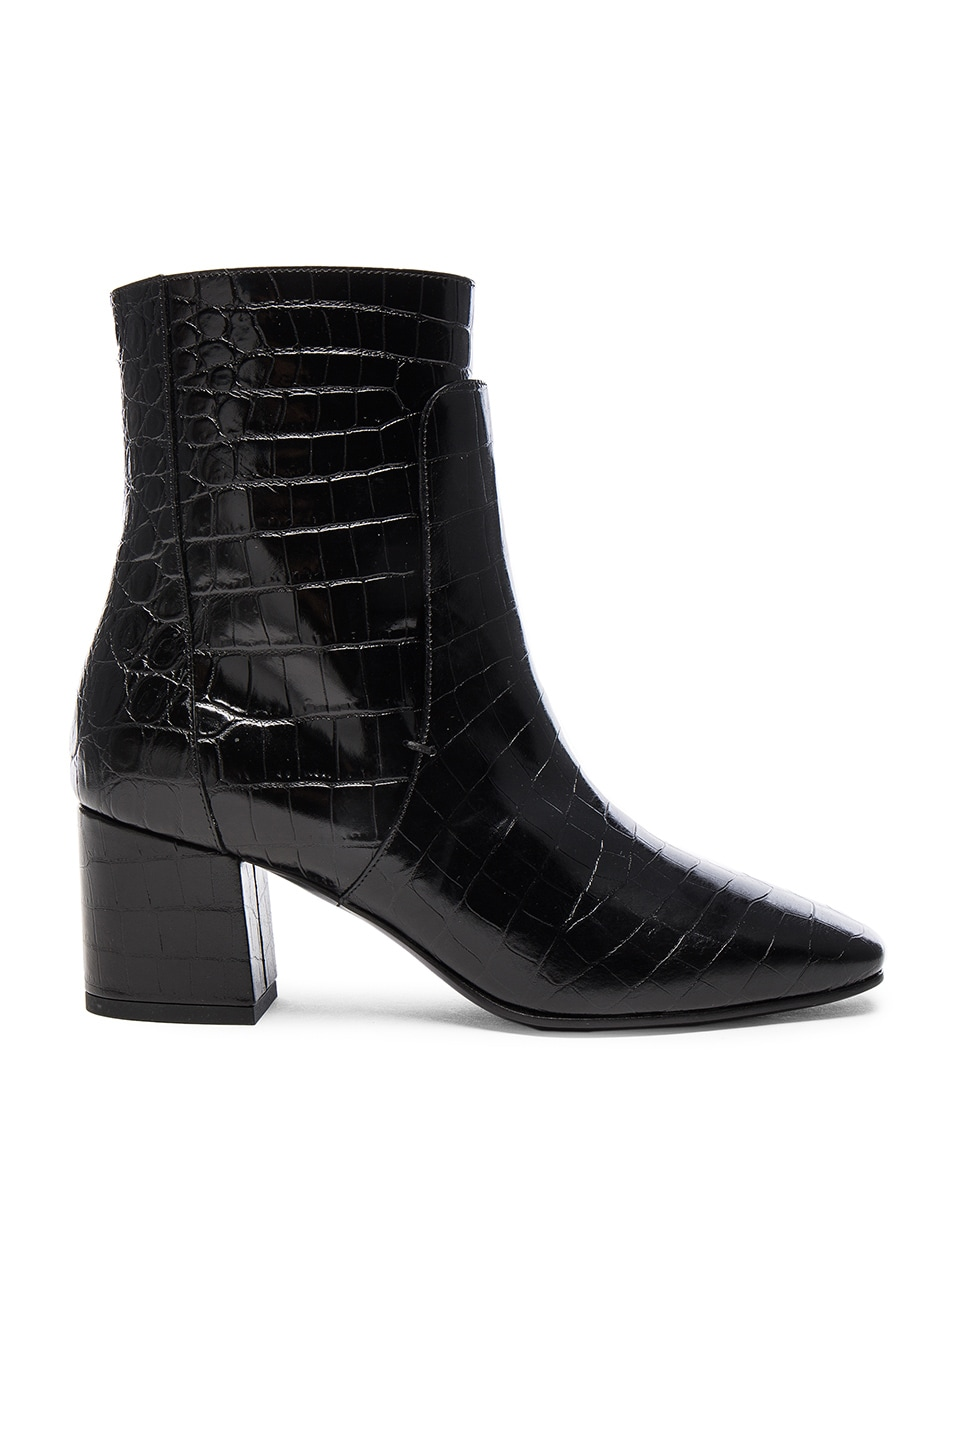 Image 1 of Givenchy Paris Croc Embossed Ankle Boots in Black